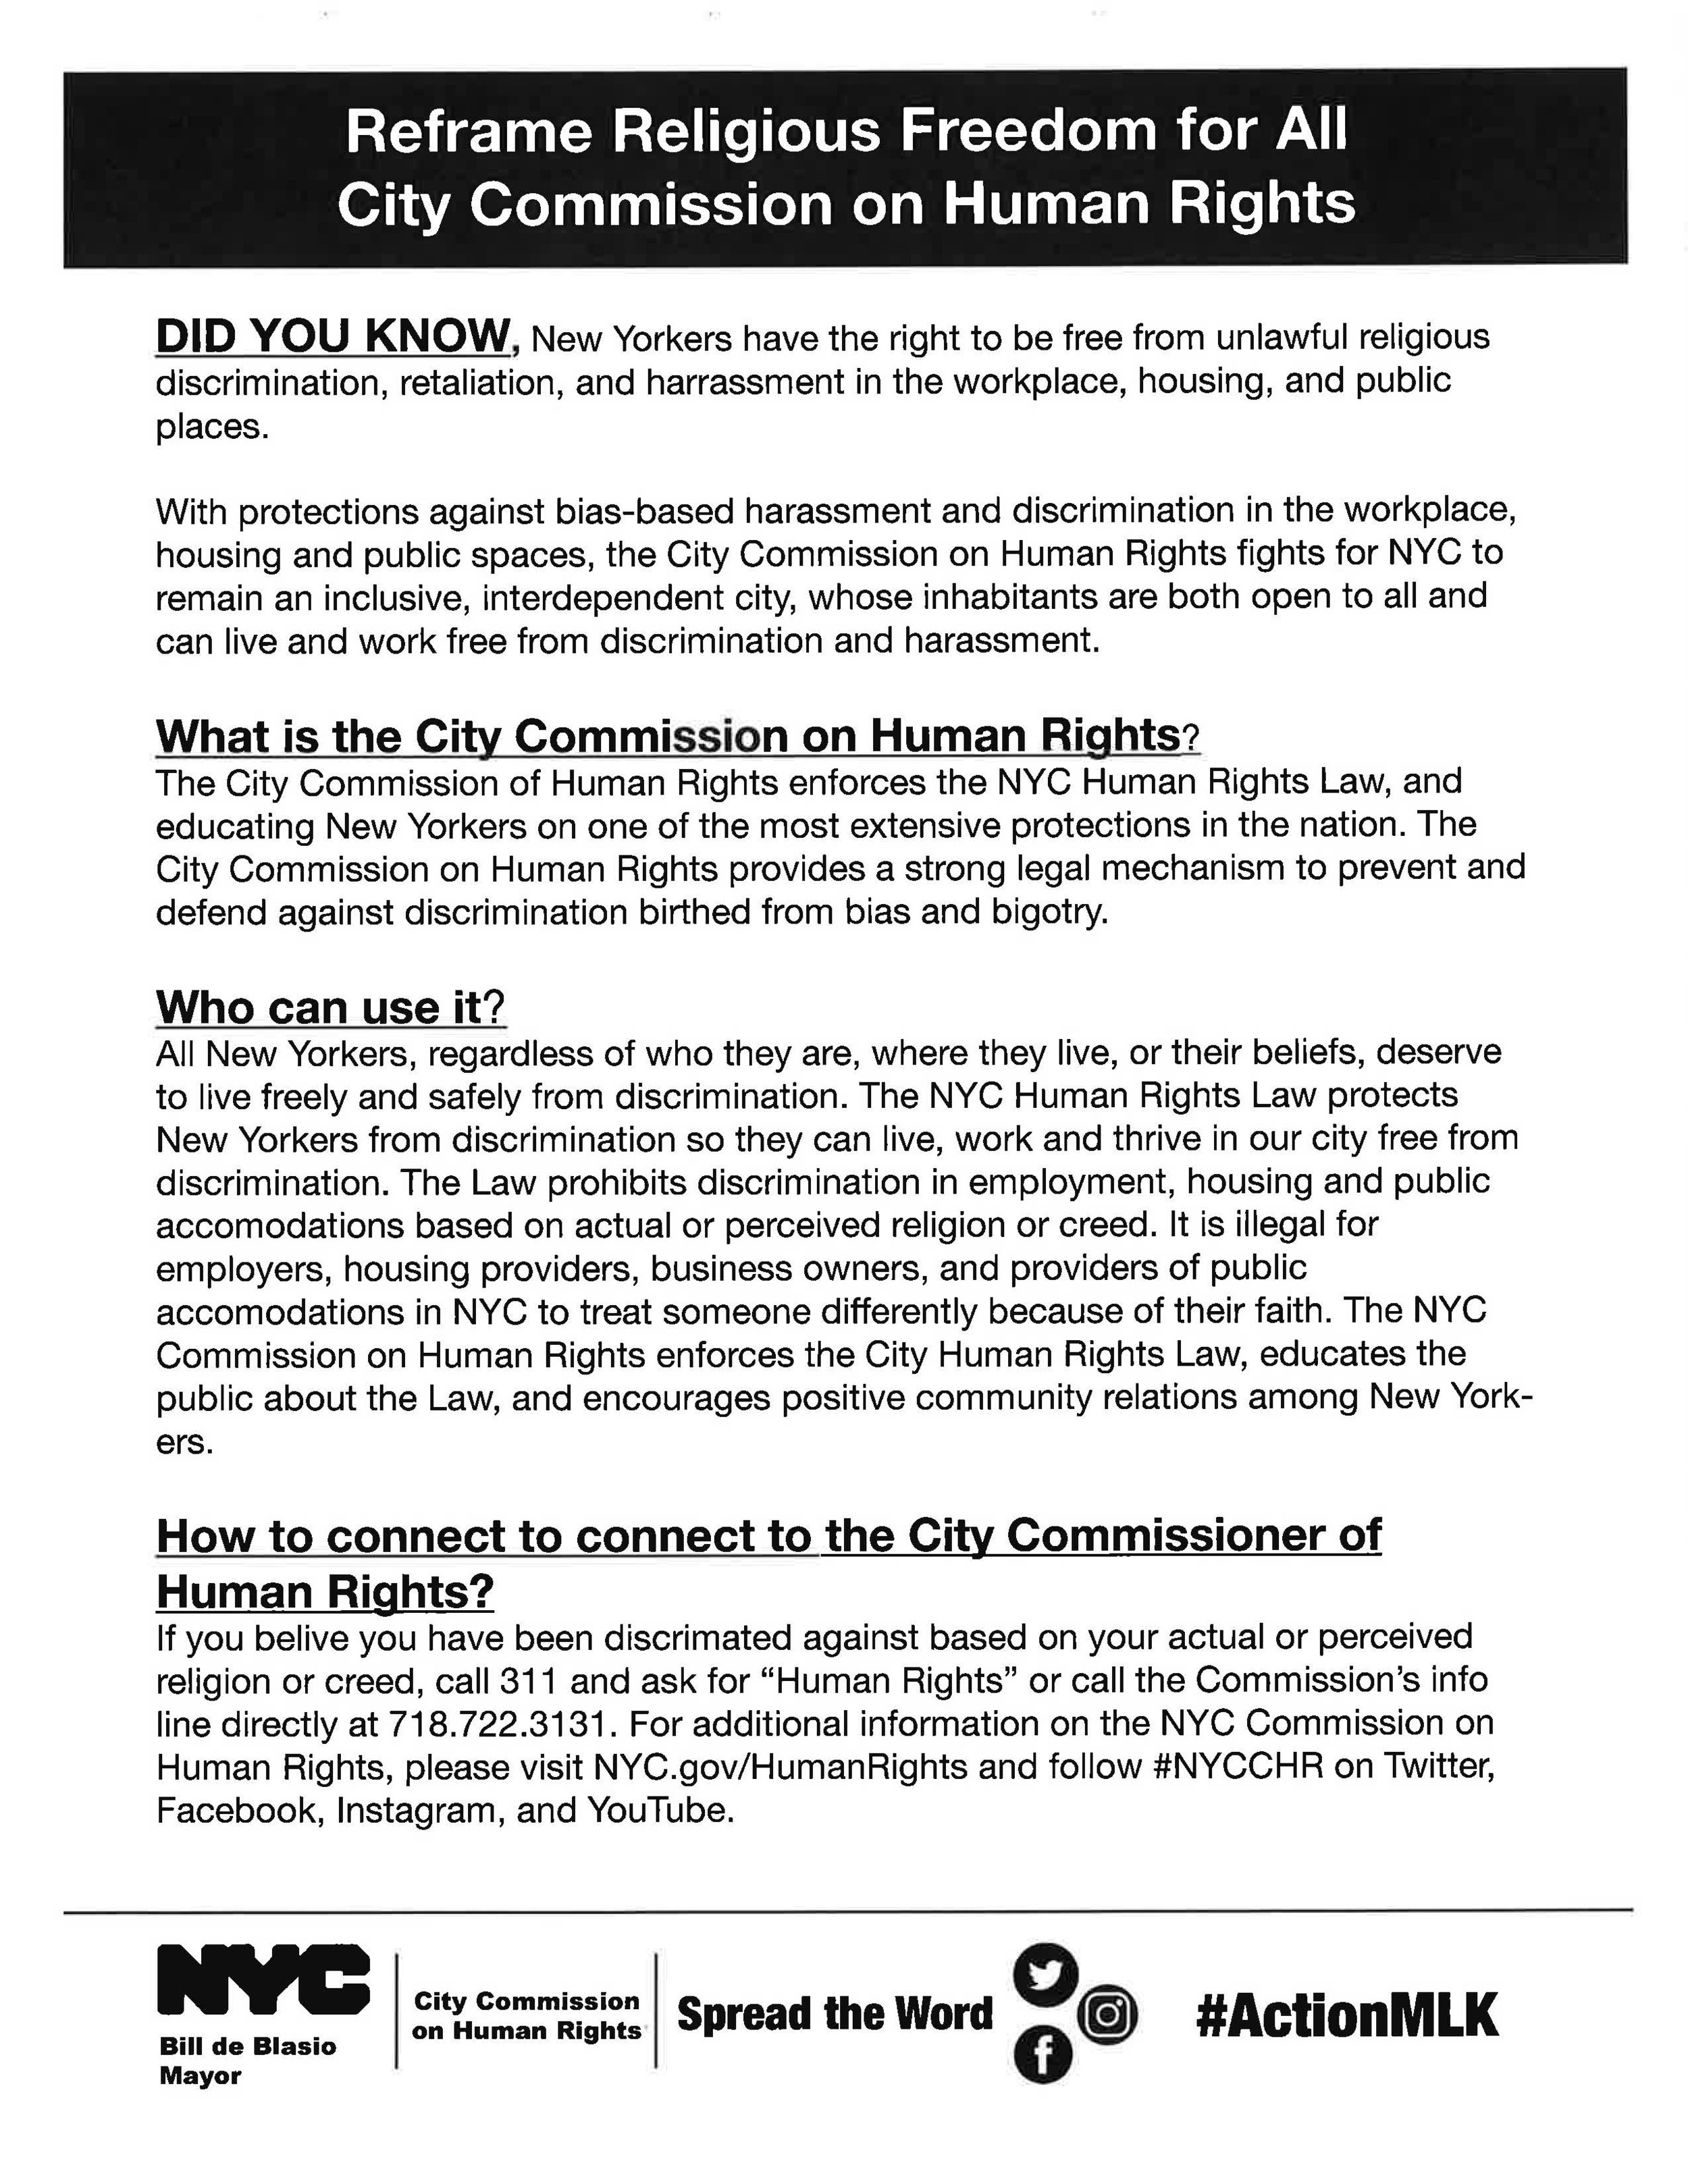 Reframe Religious Freedom for All City Commission on Human Rights